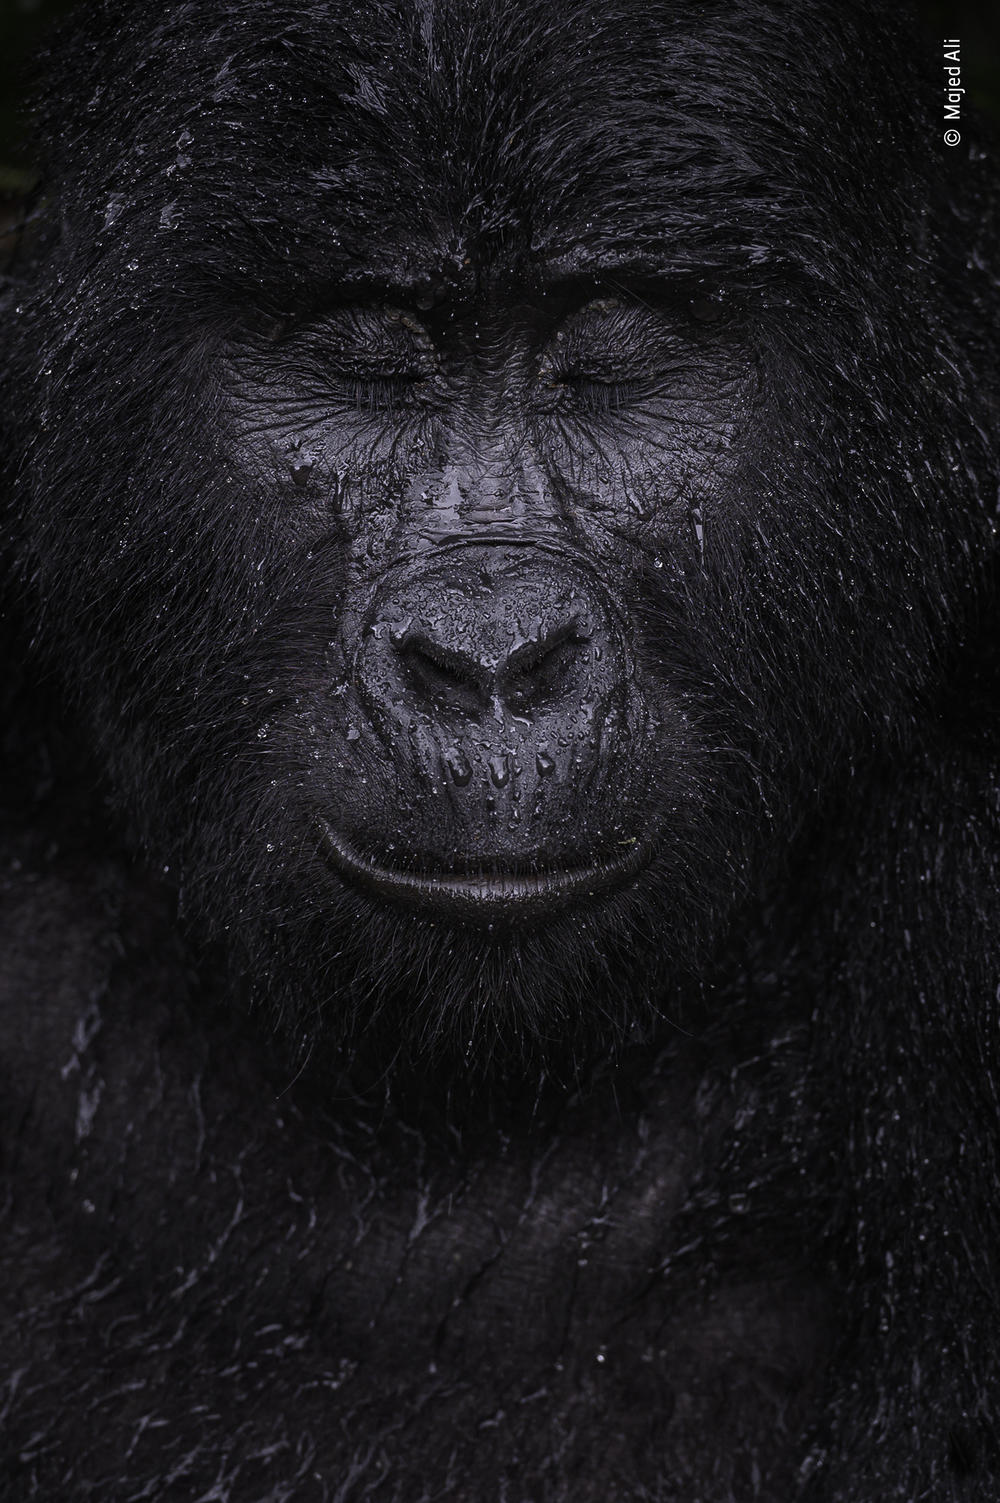 <em>Reflection</em>, by Majed Ali, Kuwait, winner, category: animal portraits. Ali glimpsed the moment a mountain gorilla closed its eyes in the rain. Ali trekked for four hours to meet Kibande, an almost-40-year-old mountain gorilla.